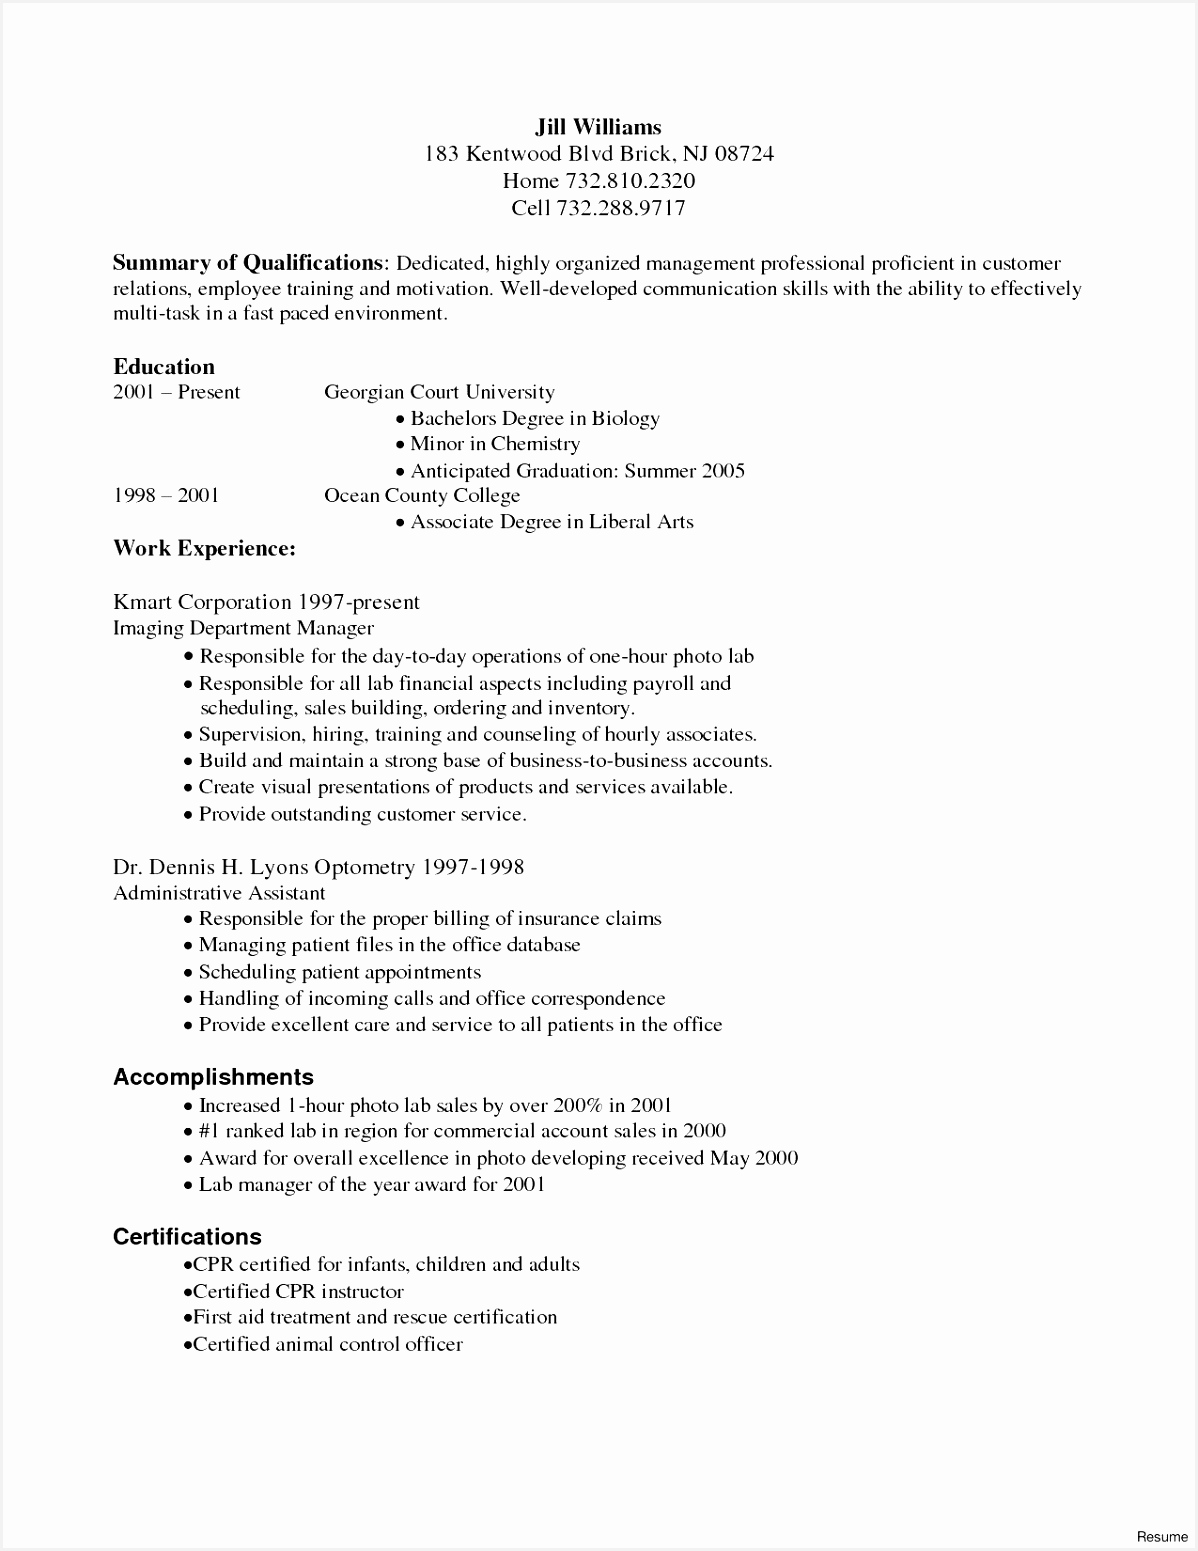 Medical Biller Cover Letter Sample Inspirational Health Education Specialist Resume Fresh Template for Resume and 15511198fsMfk